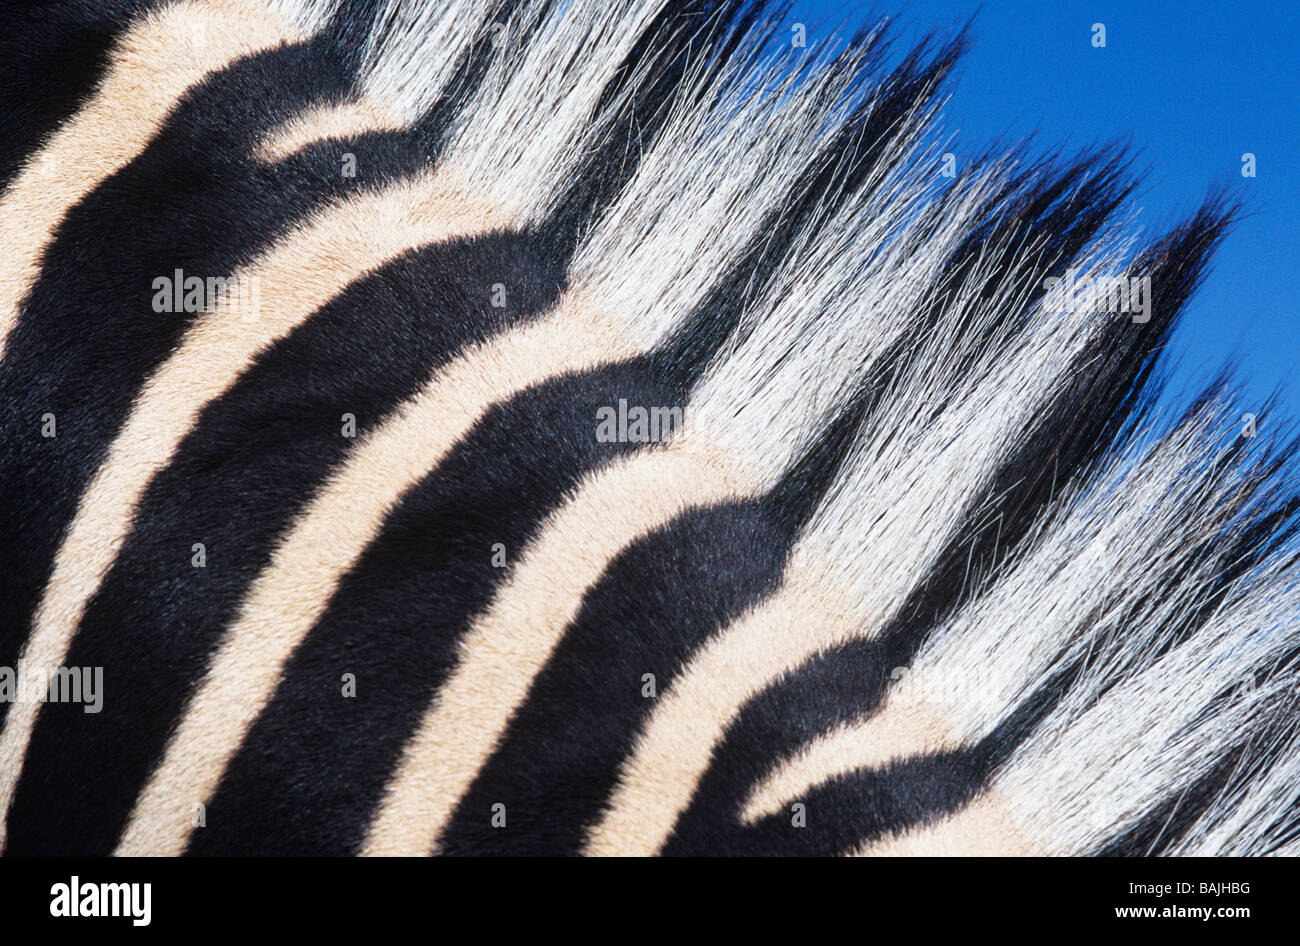 Zebras maine, close-up - Stock Image